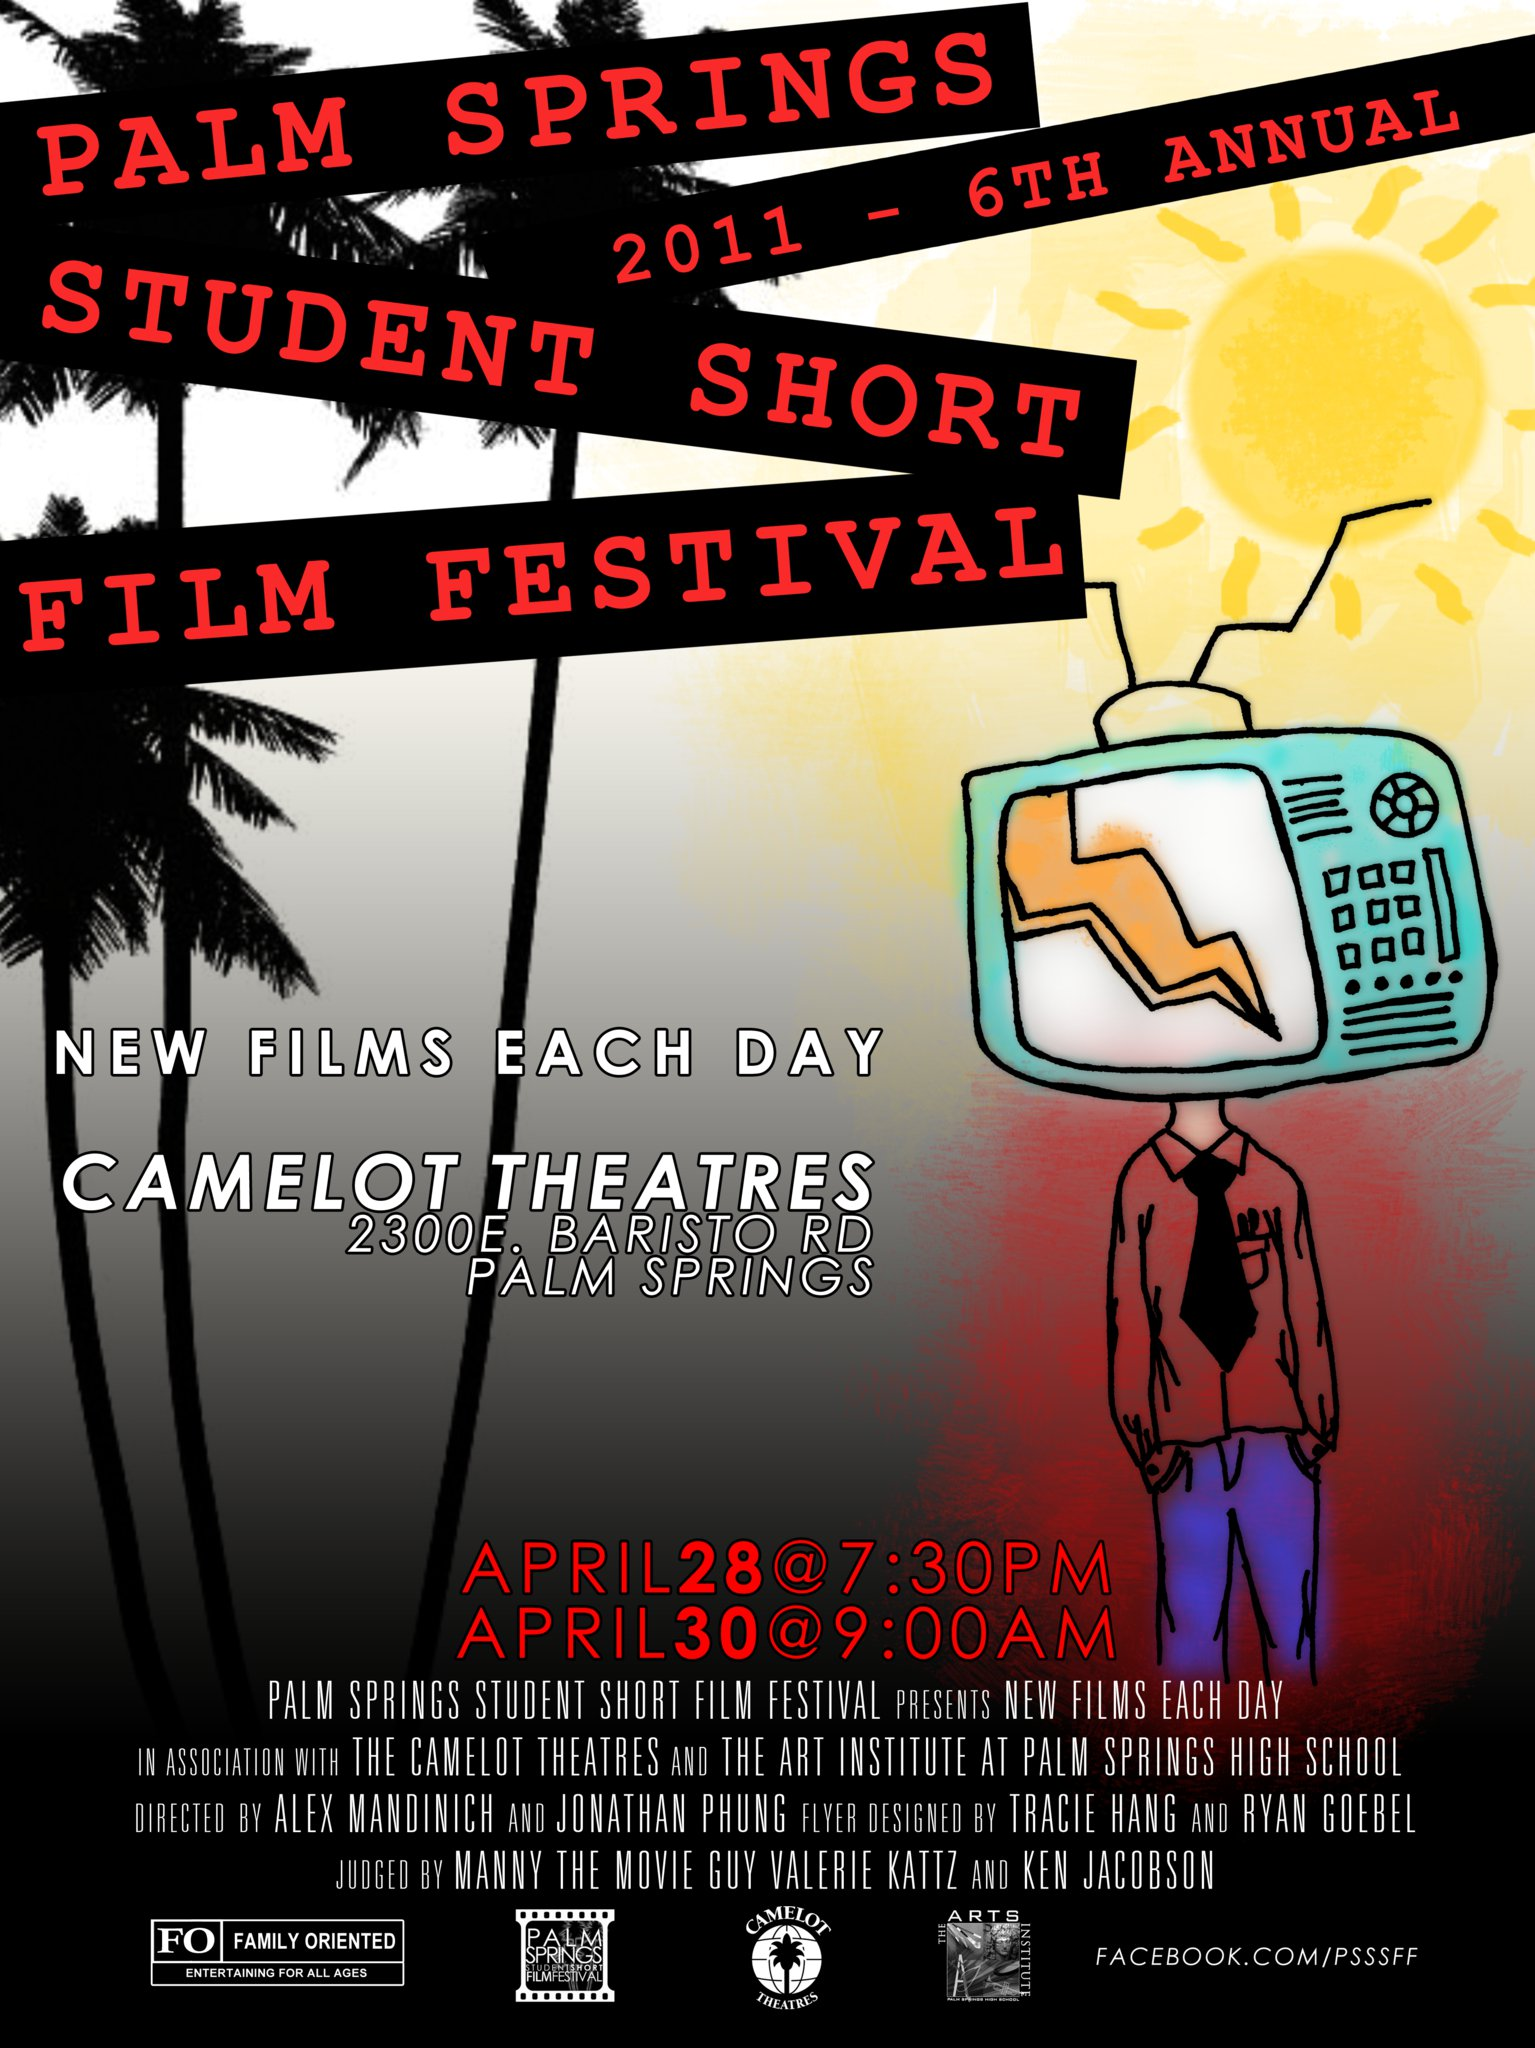 palm springs student short film festival 1